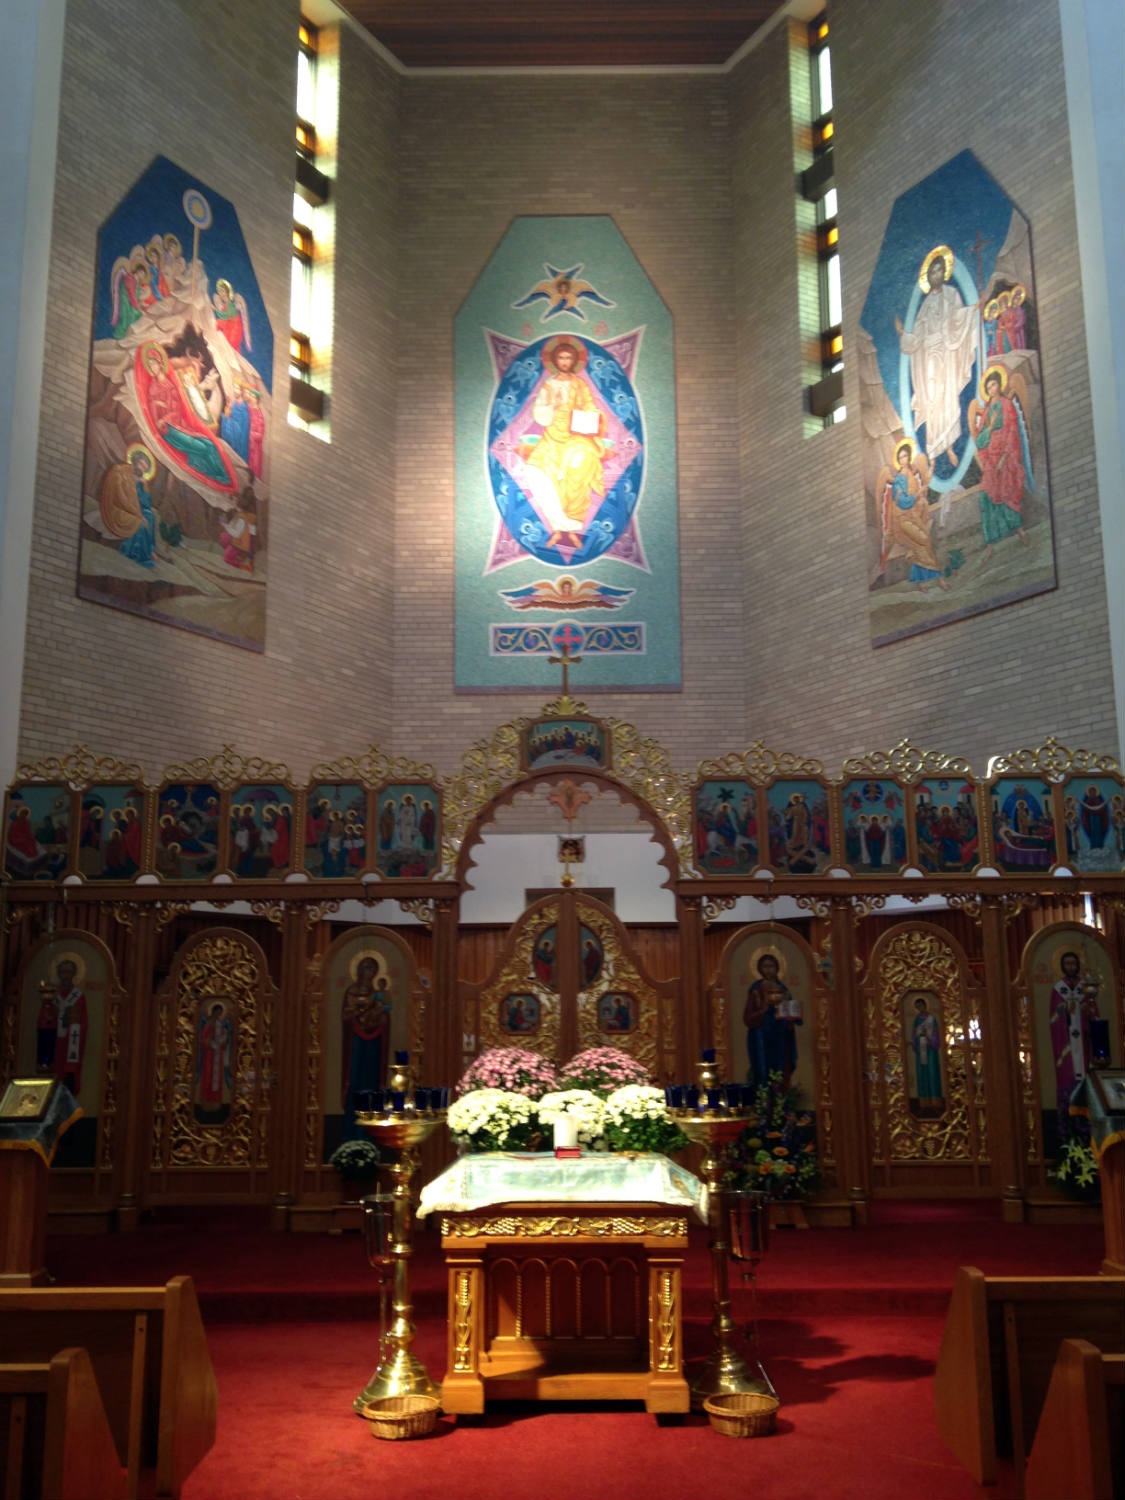 Iconostasis in St. Josaphat's Church in Rochester